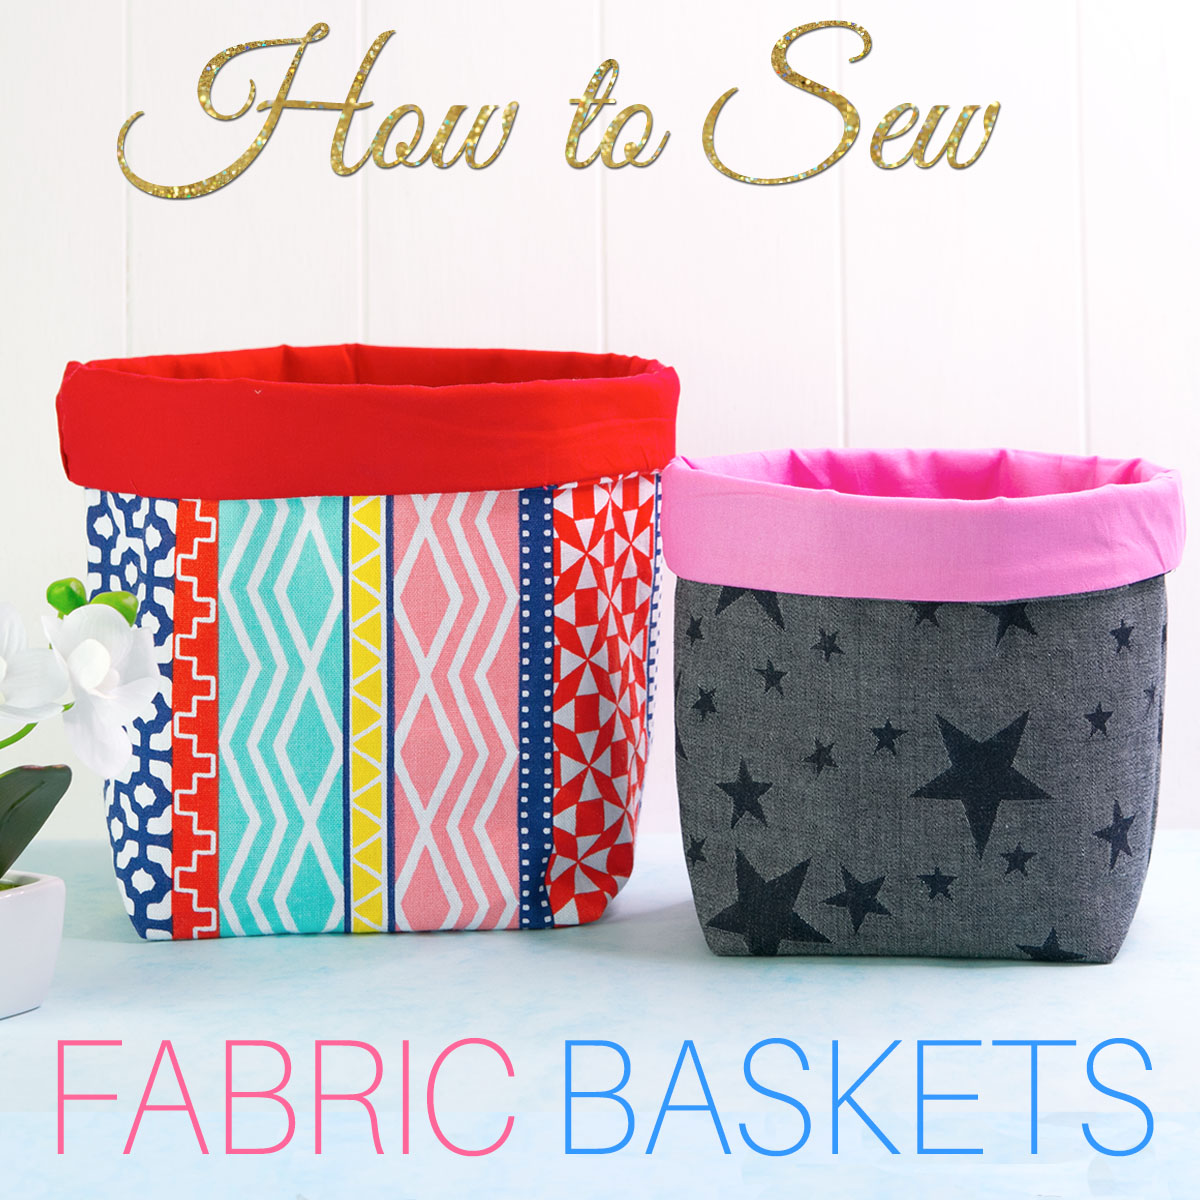 Fabric Basket Tutorial How To Make Fabric Baskets In 5